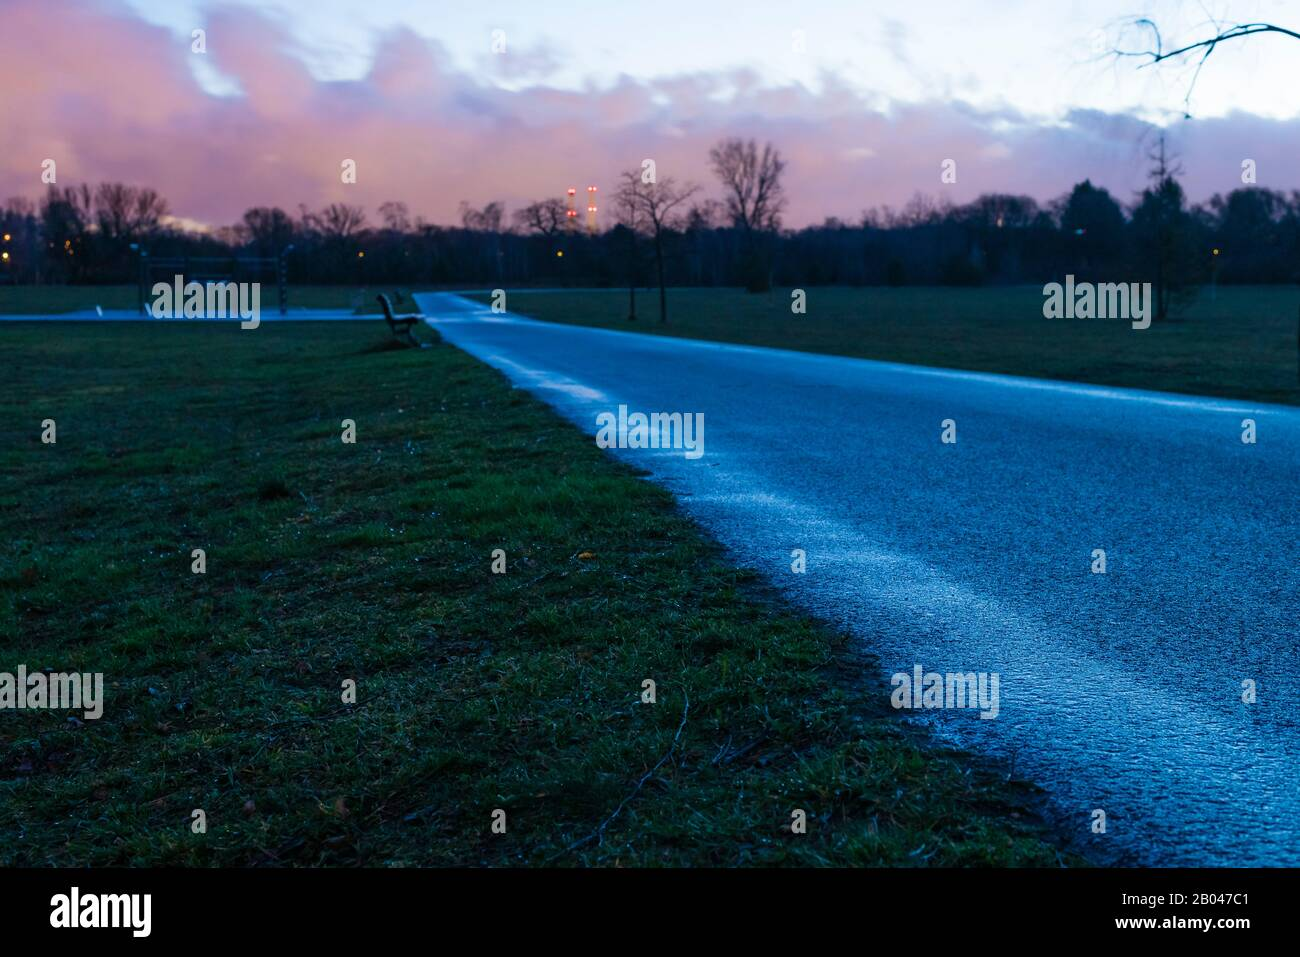 Jogging Track in a Park, background out of Focus, evening, no people Stock Photo